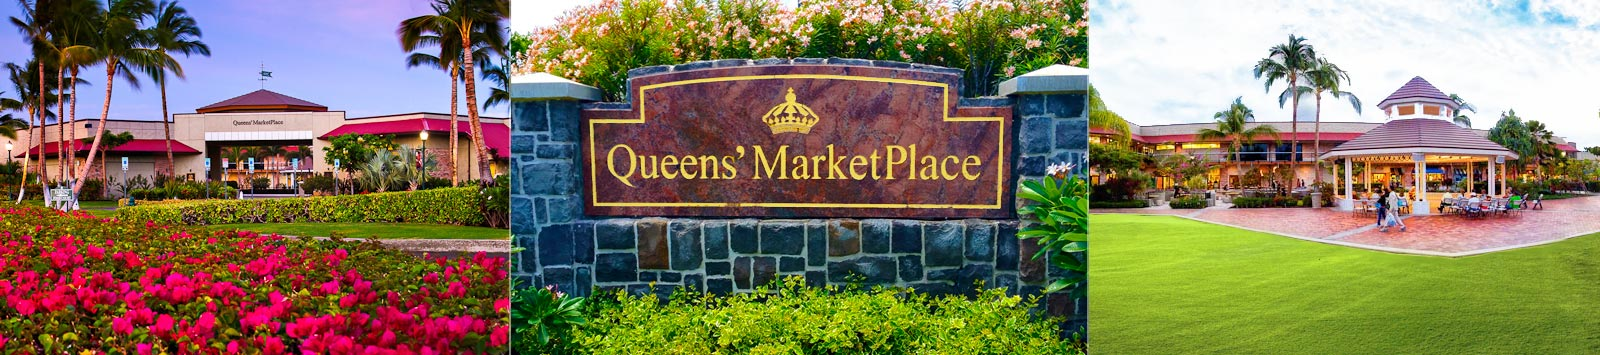 queens-marketplace-featured-bg3